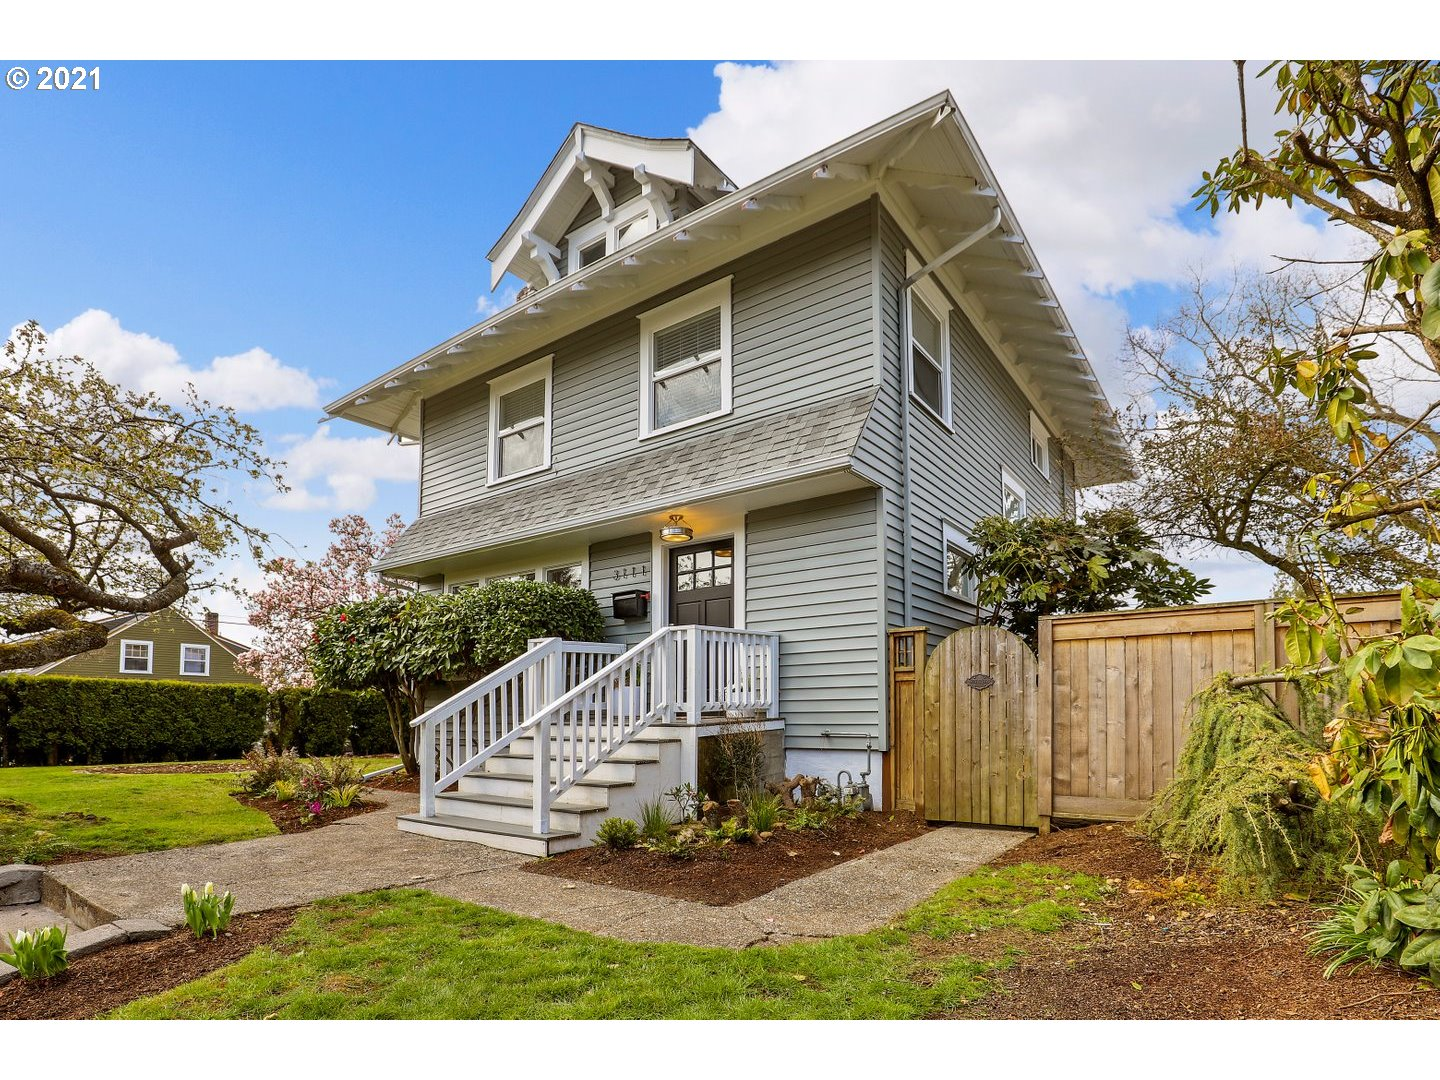 Beautifully remodeled craftsman in desirable NE Location. High ceilings lend a bright and open feel to the spacious living and dining rooms. The kitchen is a cook's dream with stainless steel gas appliances, gorgeous wood counters and a slab granite island. Lower level suite has potential for multi-generational living, nanny or income suite, with a full kitchen, bath, and laundry. Huge yard is perfect for entertaining and gardening in the raised beds. This home is a rare gem!